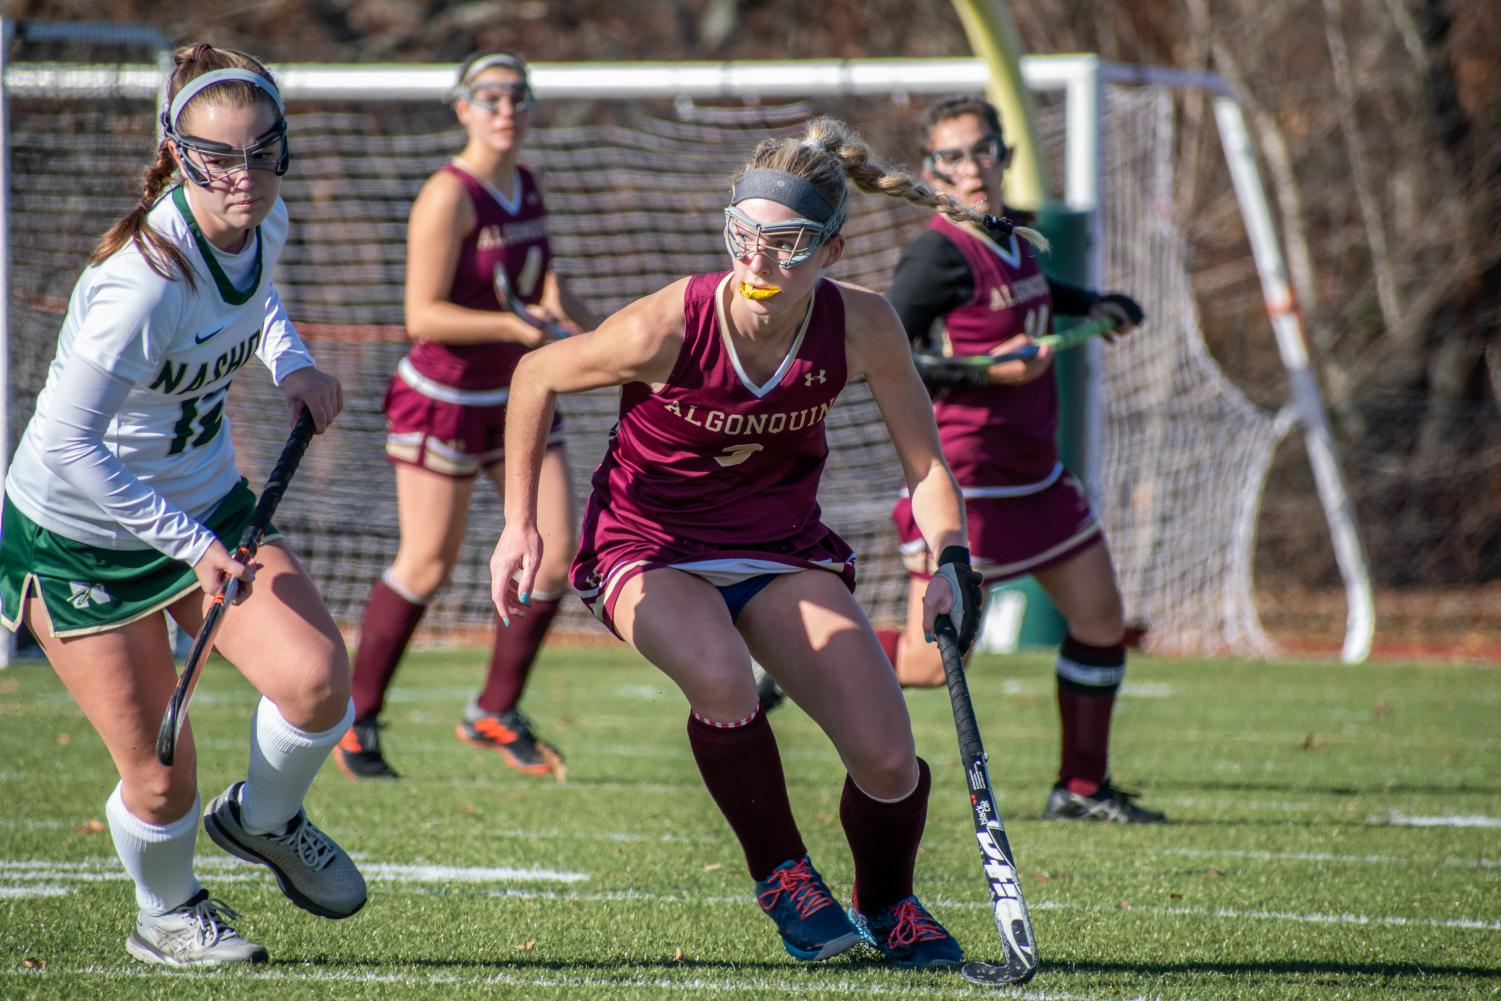 Senior Halle Zides looks for the ball against Nashoba on Nov. 9 in the CMASS Championship game. The team went on to lose 2-0.